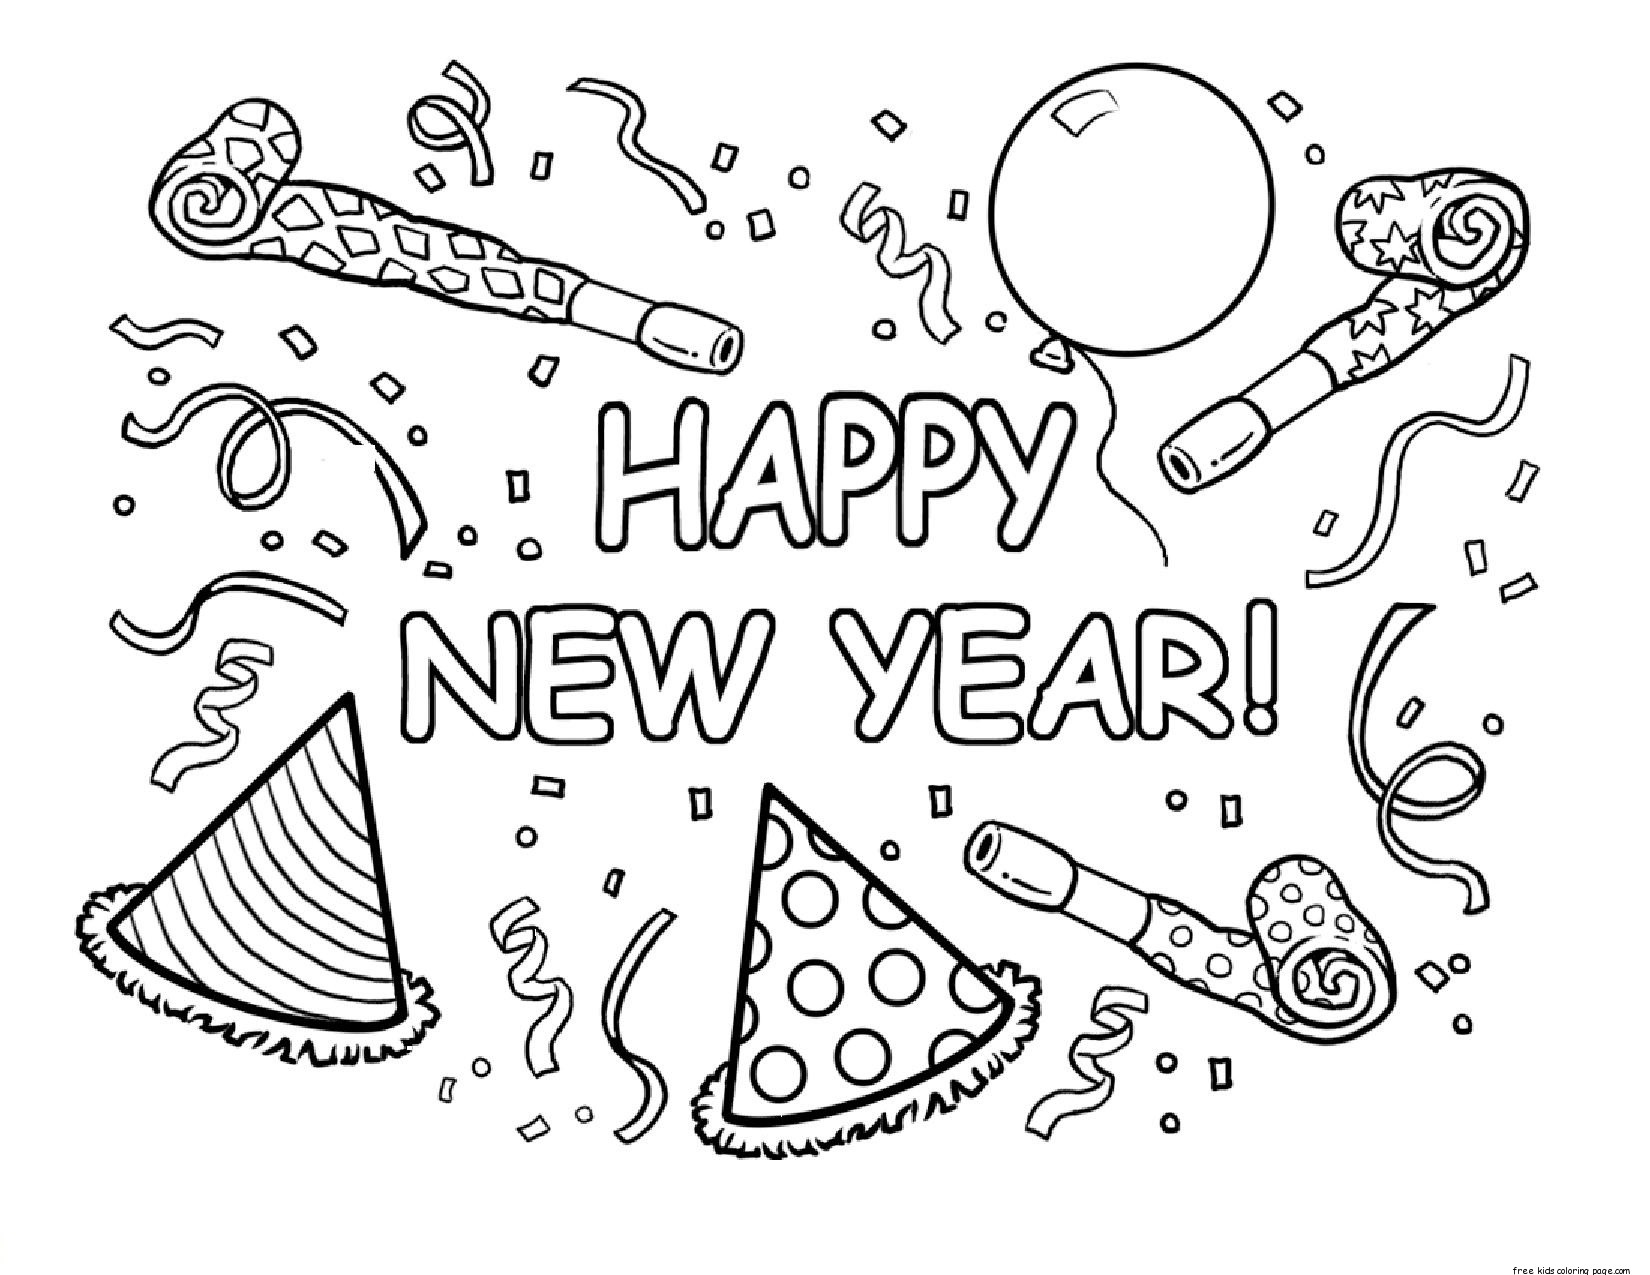 Printable Happy New Year Coloring Pages For Kidsfree Printable Coloring Pages For Kids